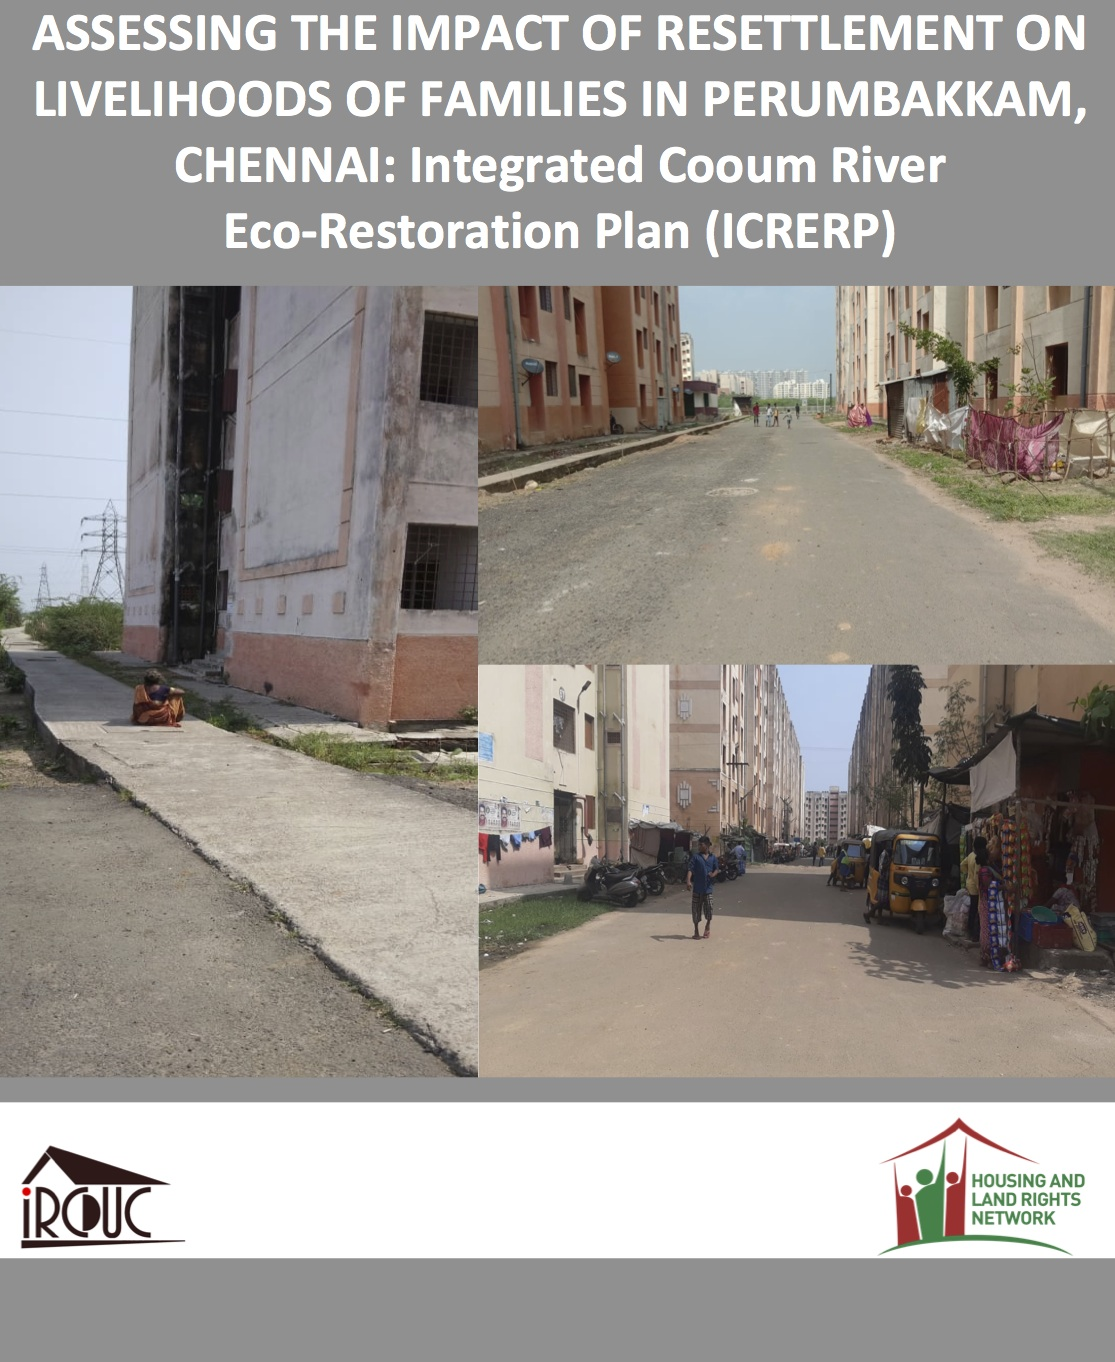 Perumbakkam Livelihood Assessment Report